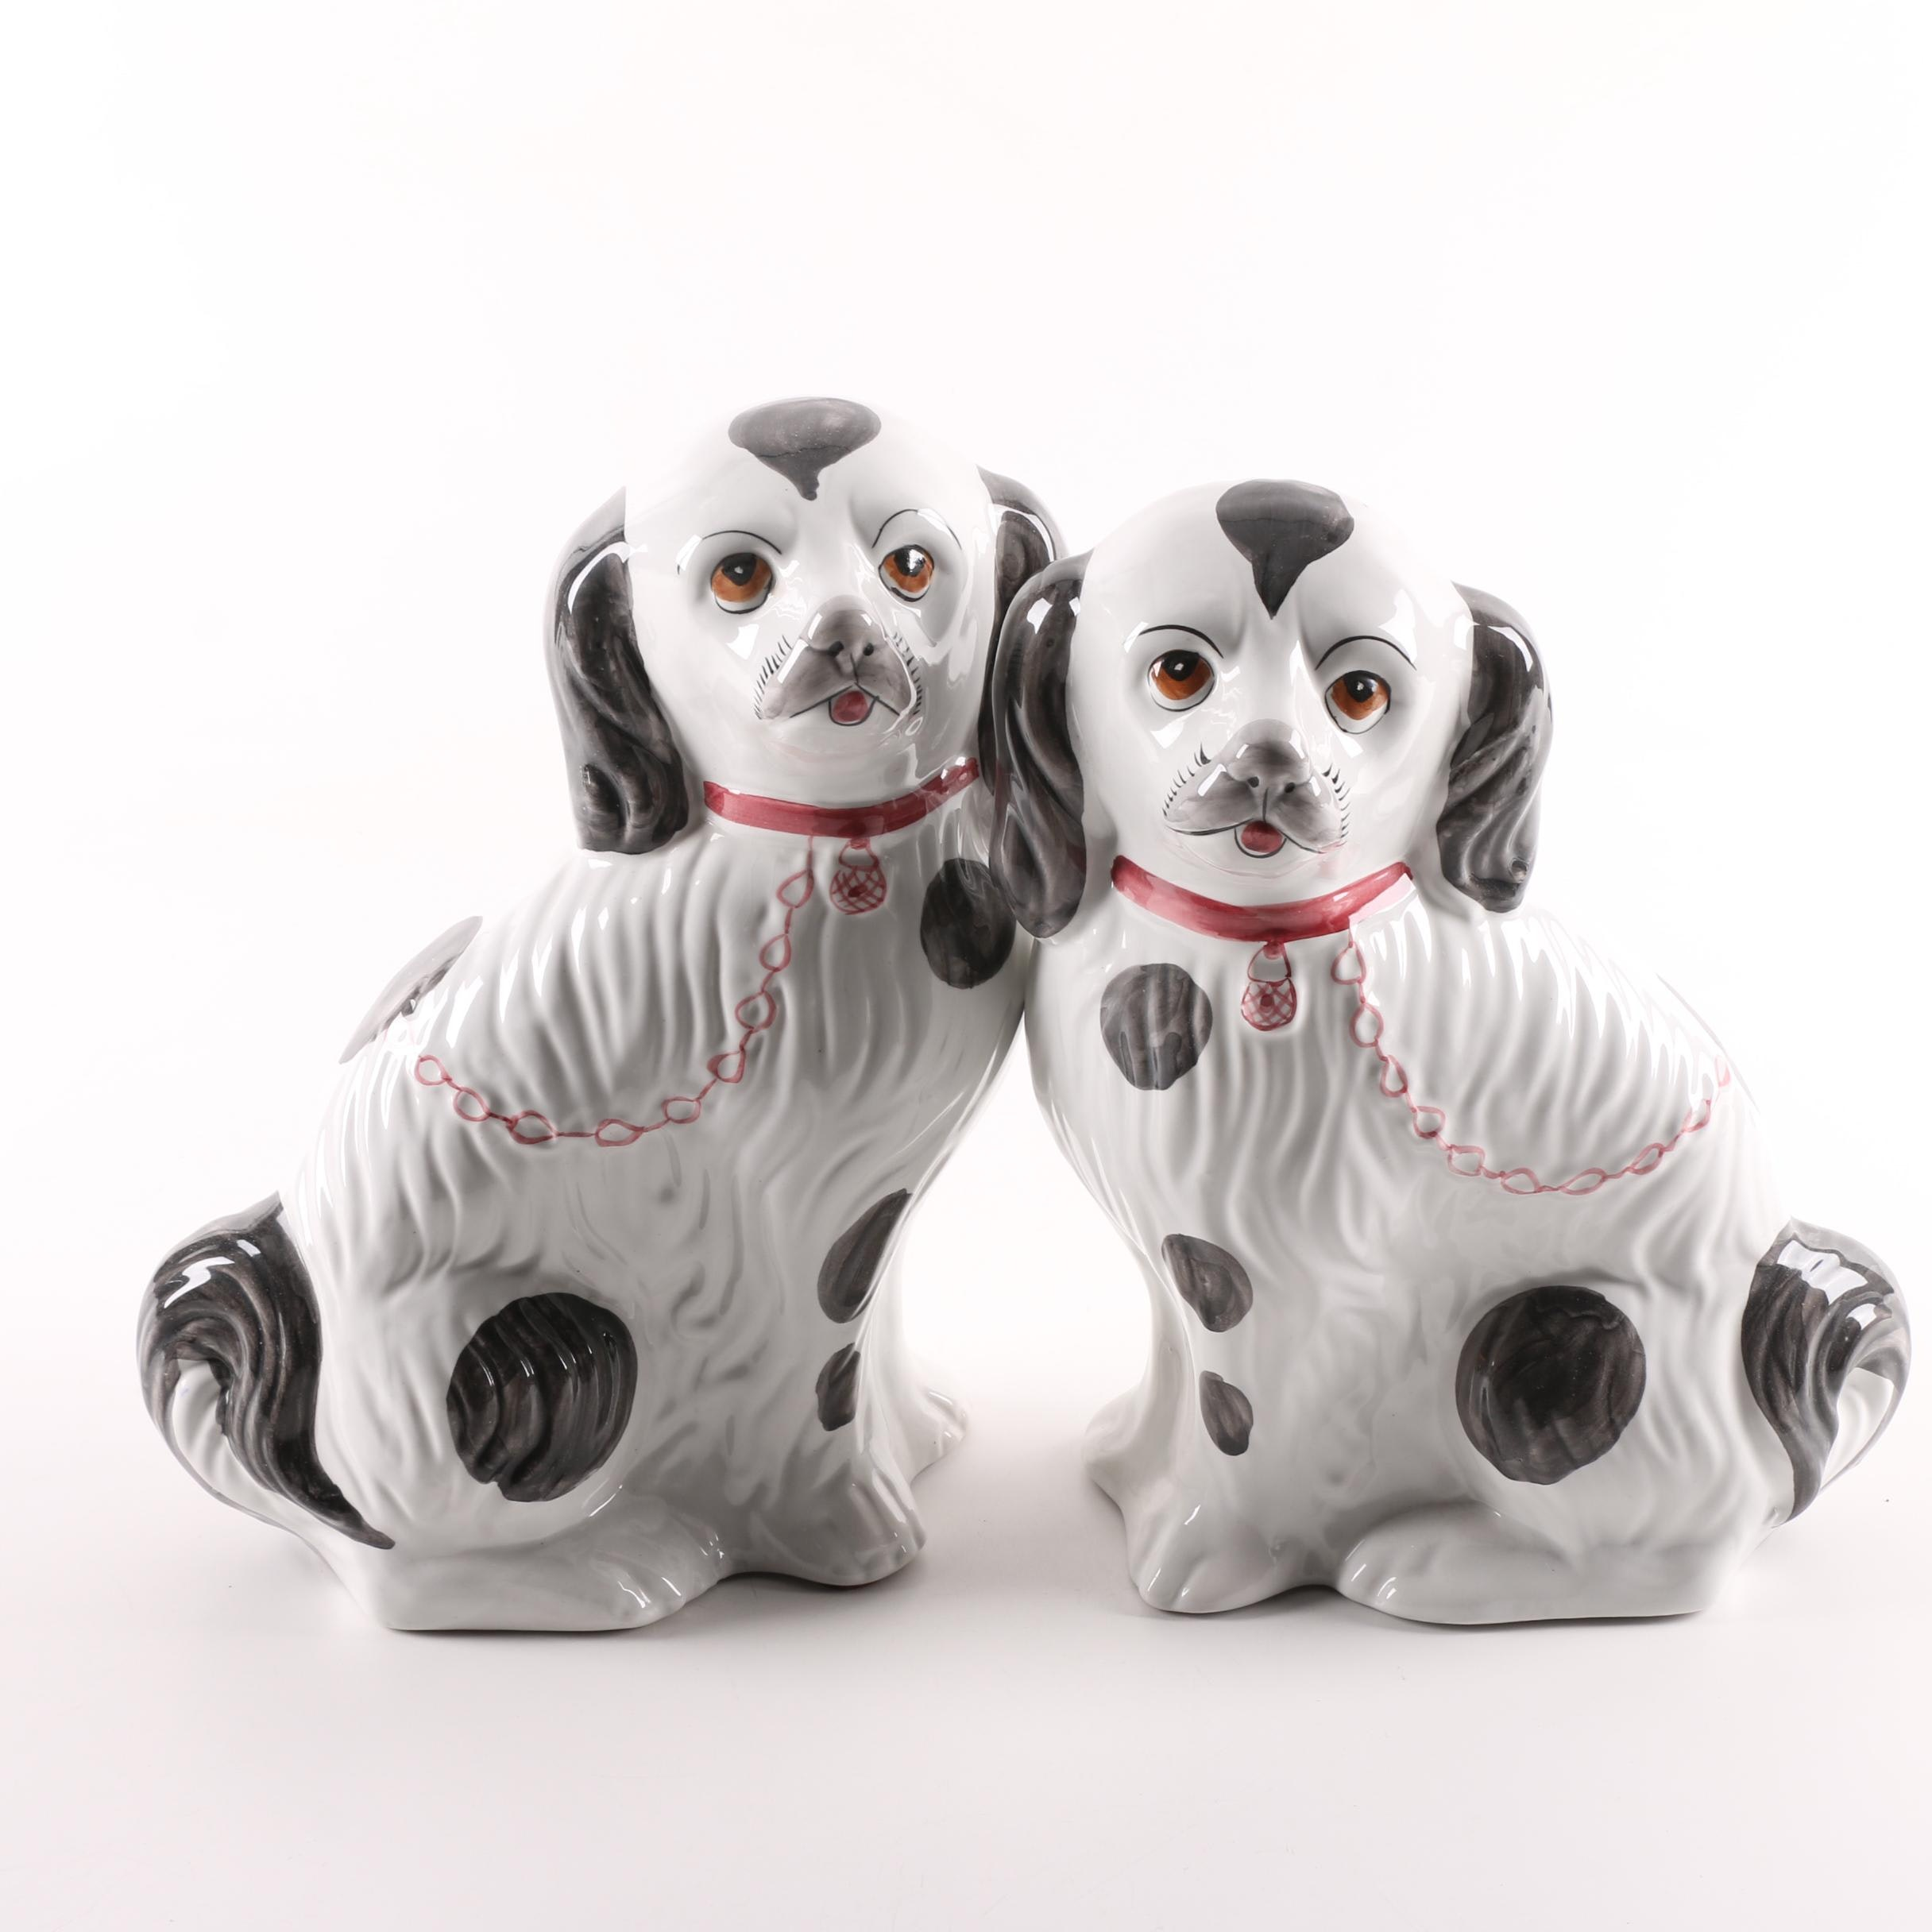 Hand-Painted Ceramic Portuguese Dog Figurines